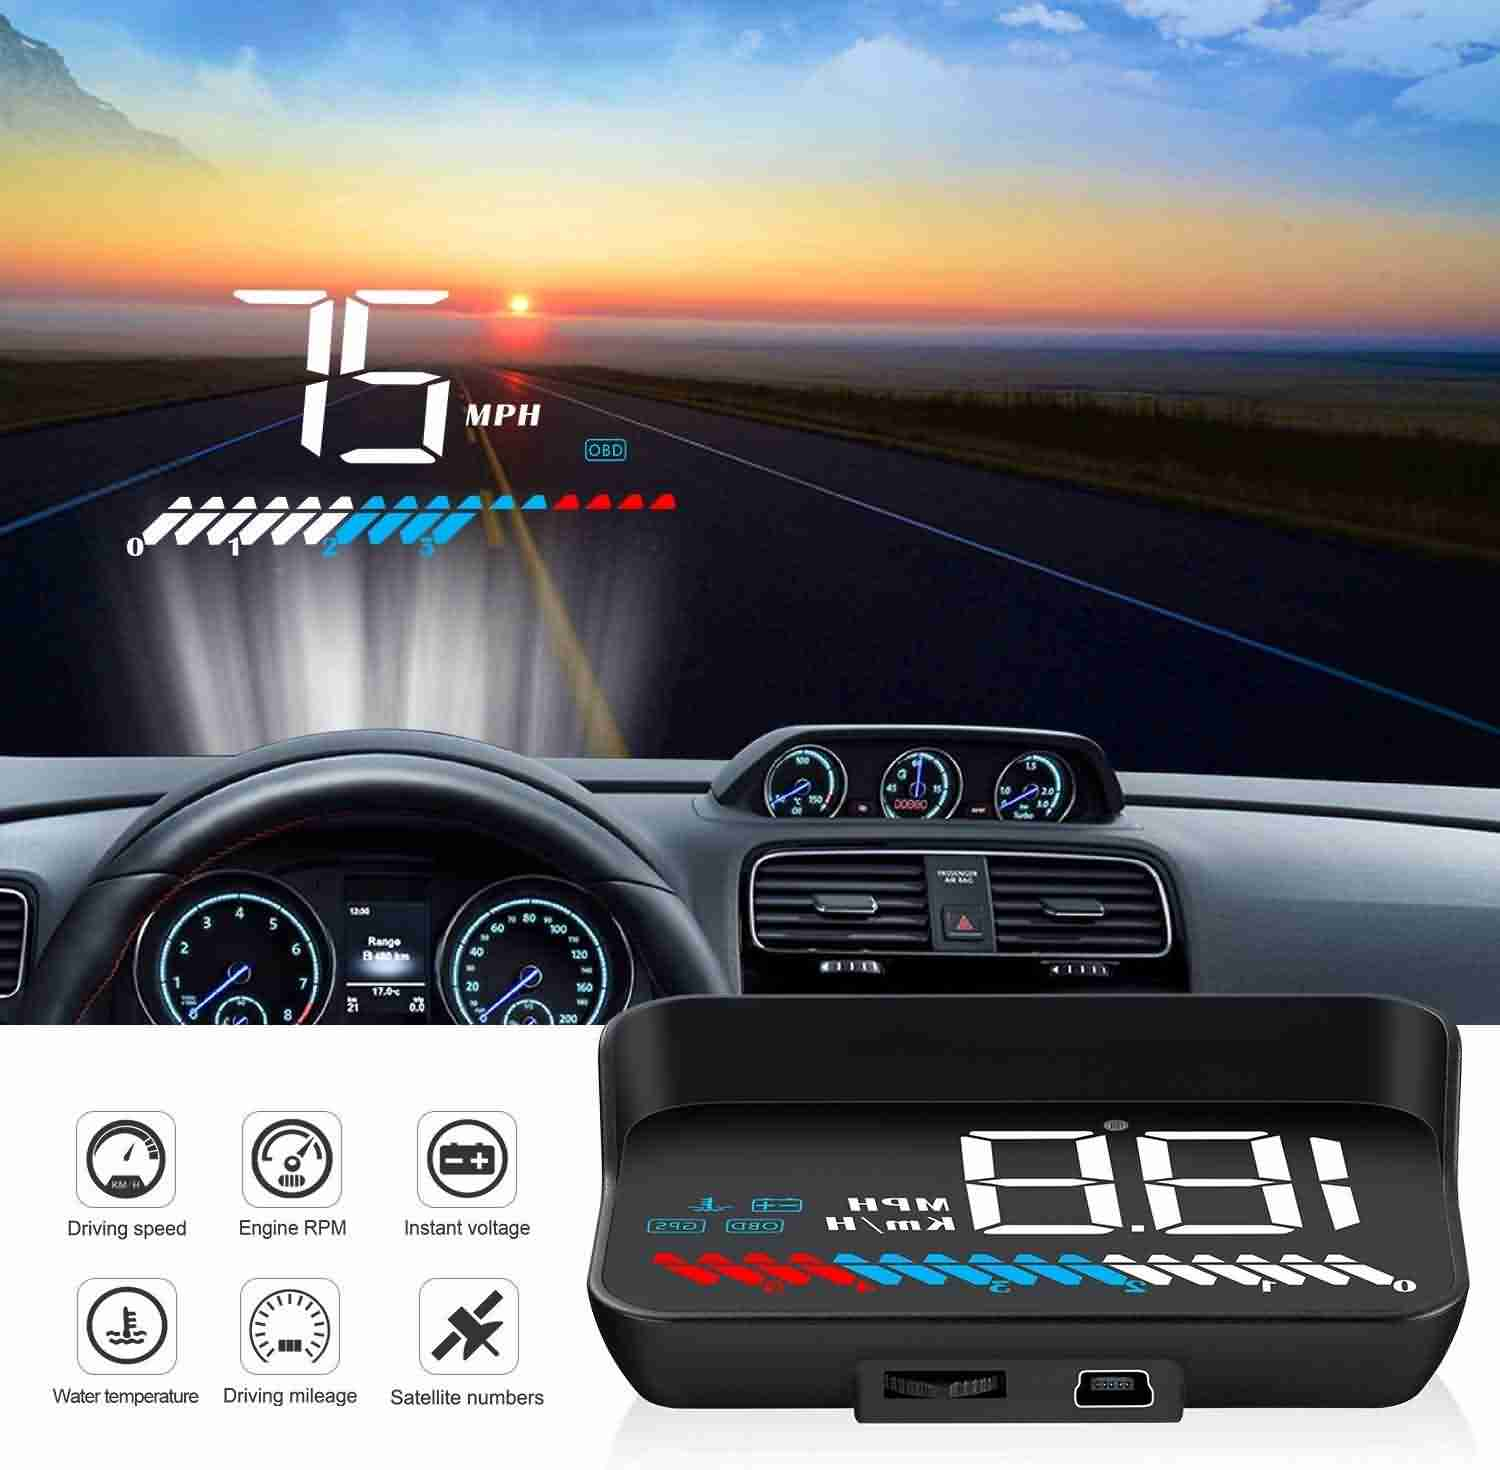 Best Hud For Car >> Top 9 Best Heads Up Display Hud For Cars In 2019 Autospore